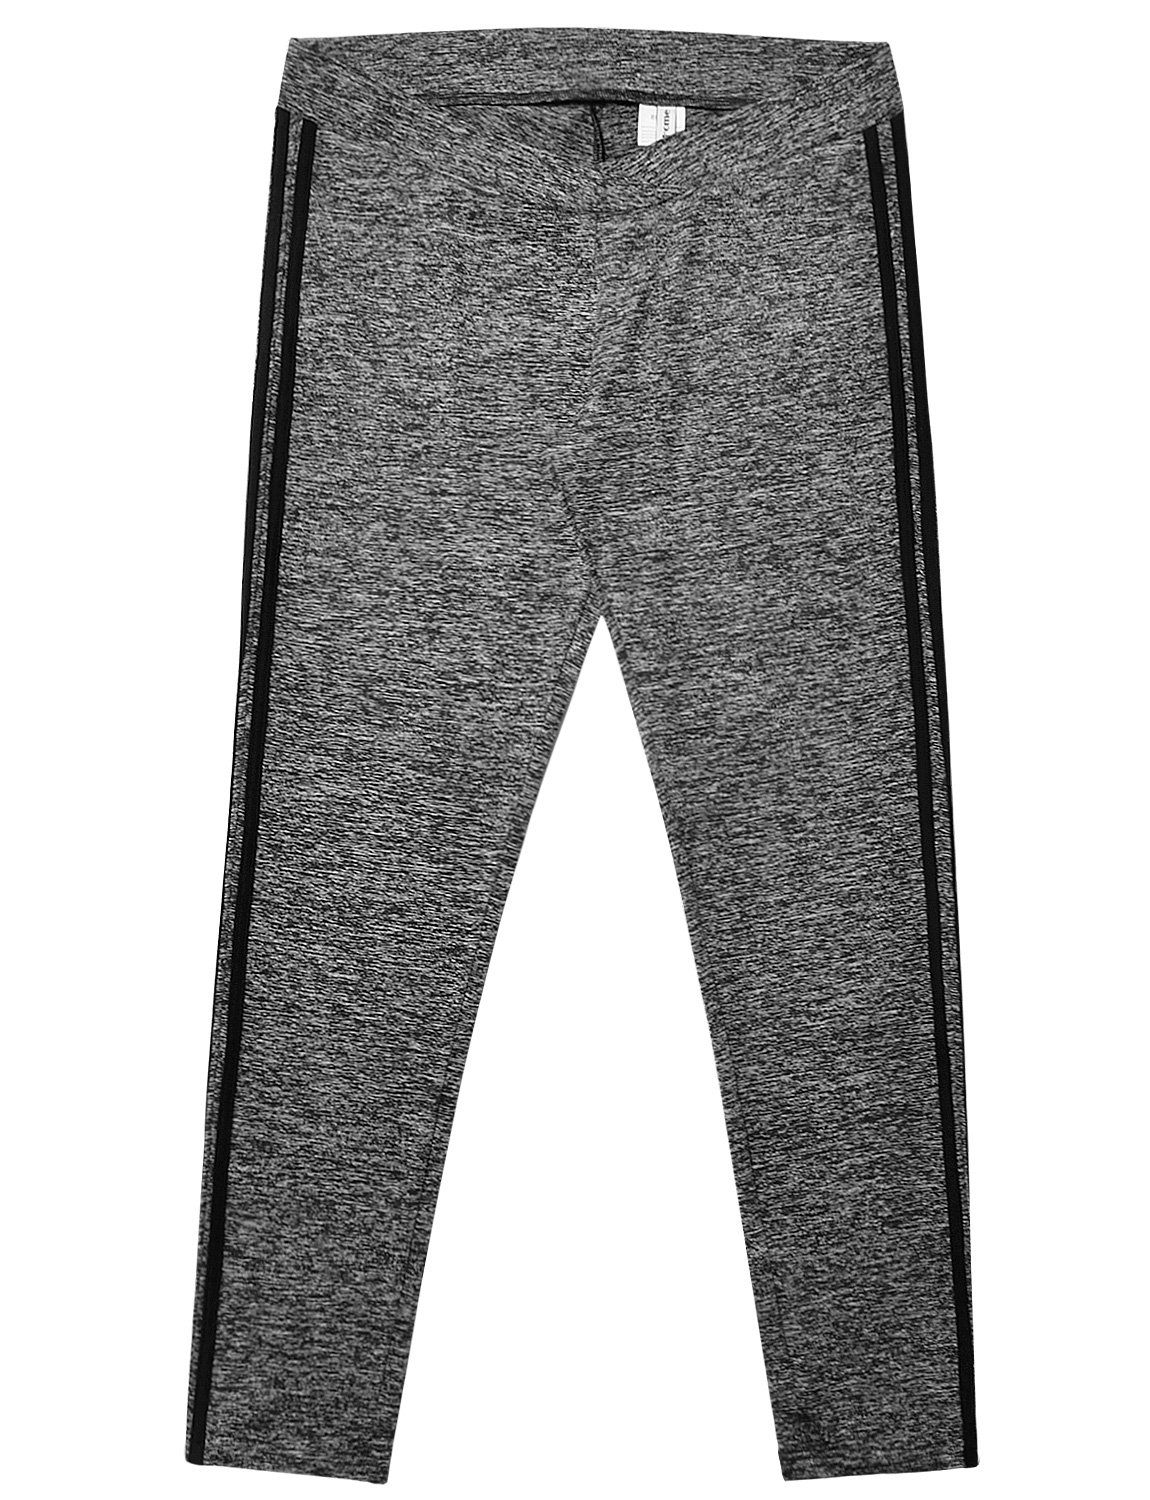 c308cd54a8289 Maternity Outfits - comfortable maternity leggings : Bhome Womens Side  Stripe Low Waist Stretch Yoga Track Pants Workout Sportswear Slim Maternity  Leggings ...